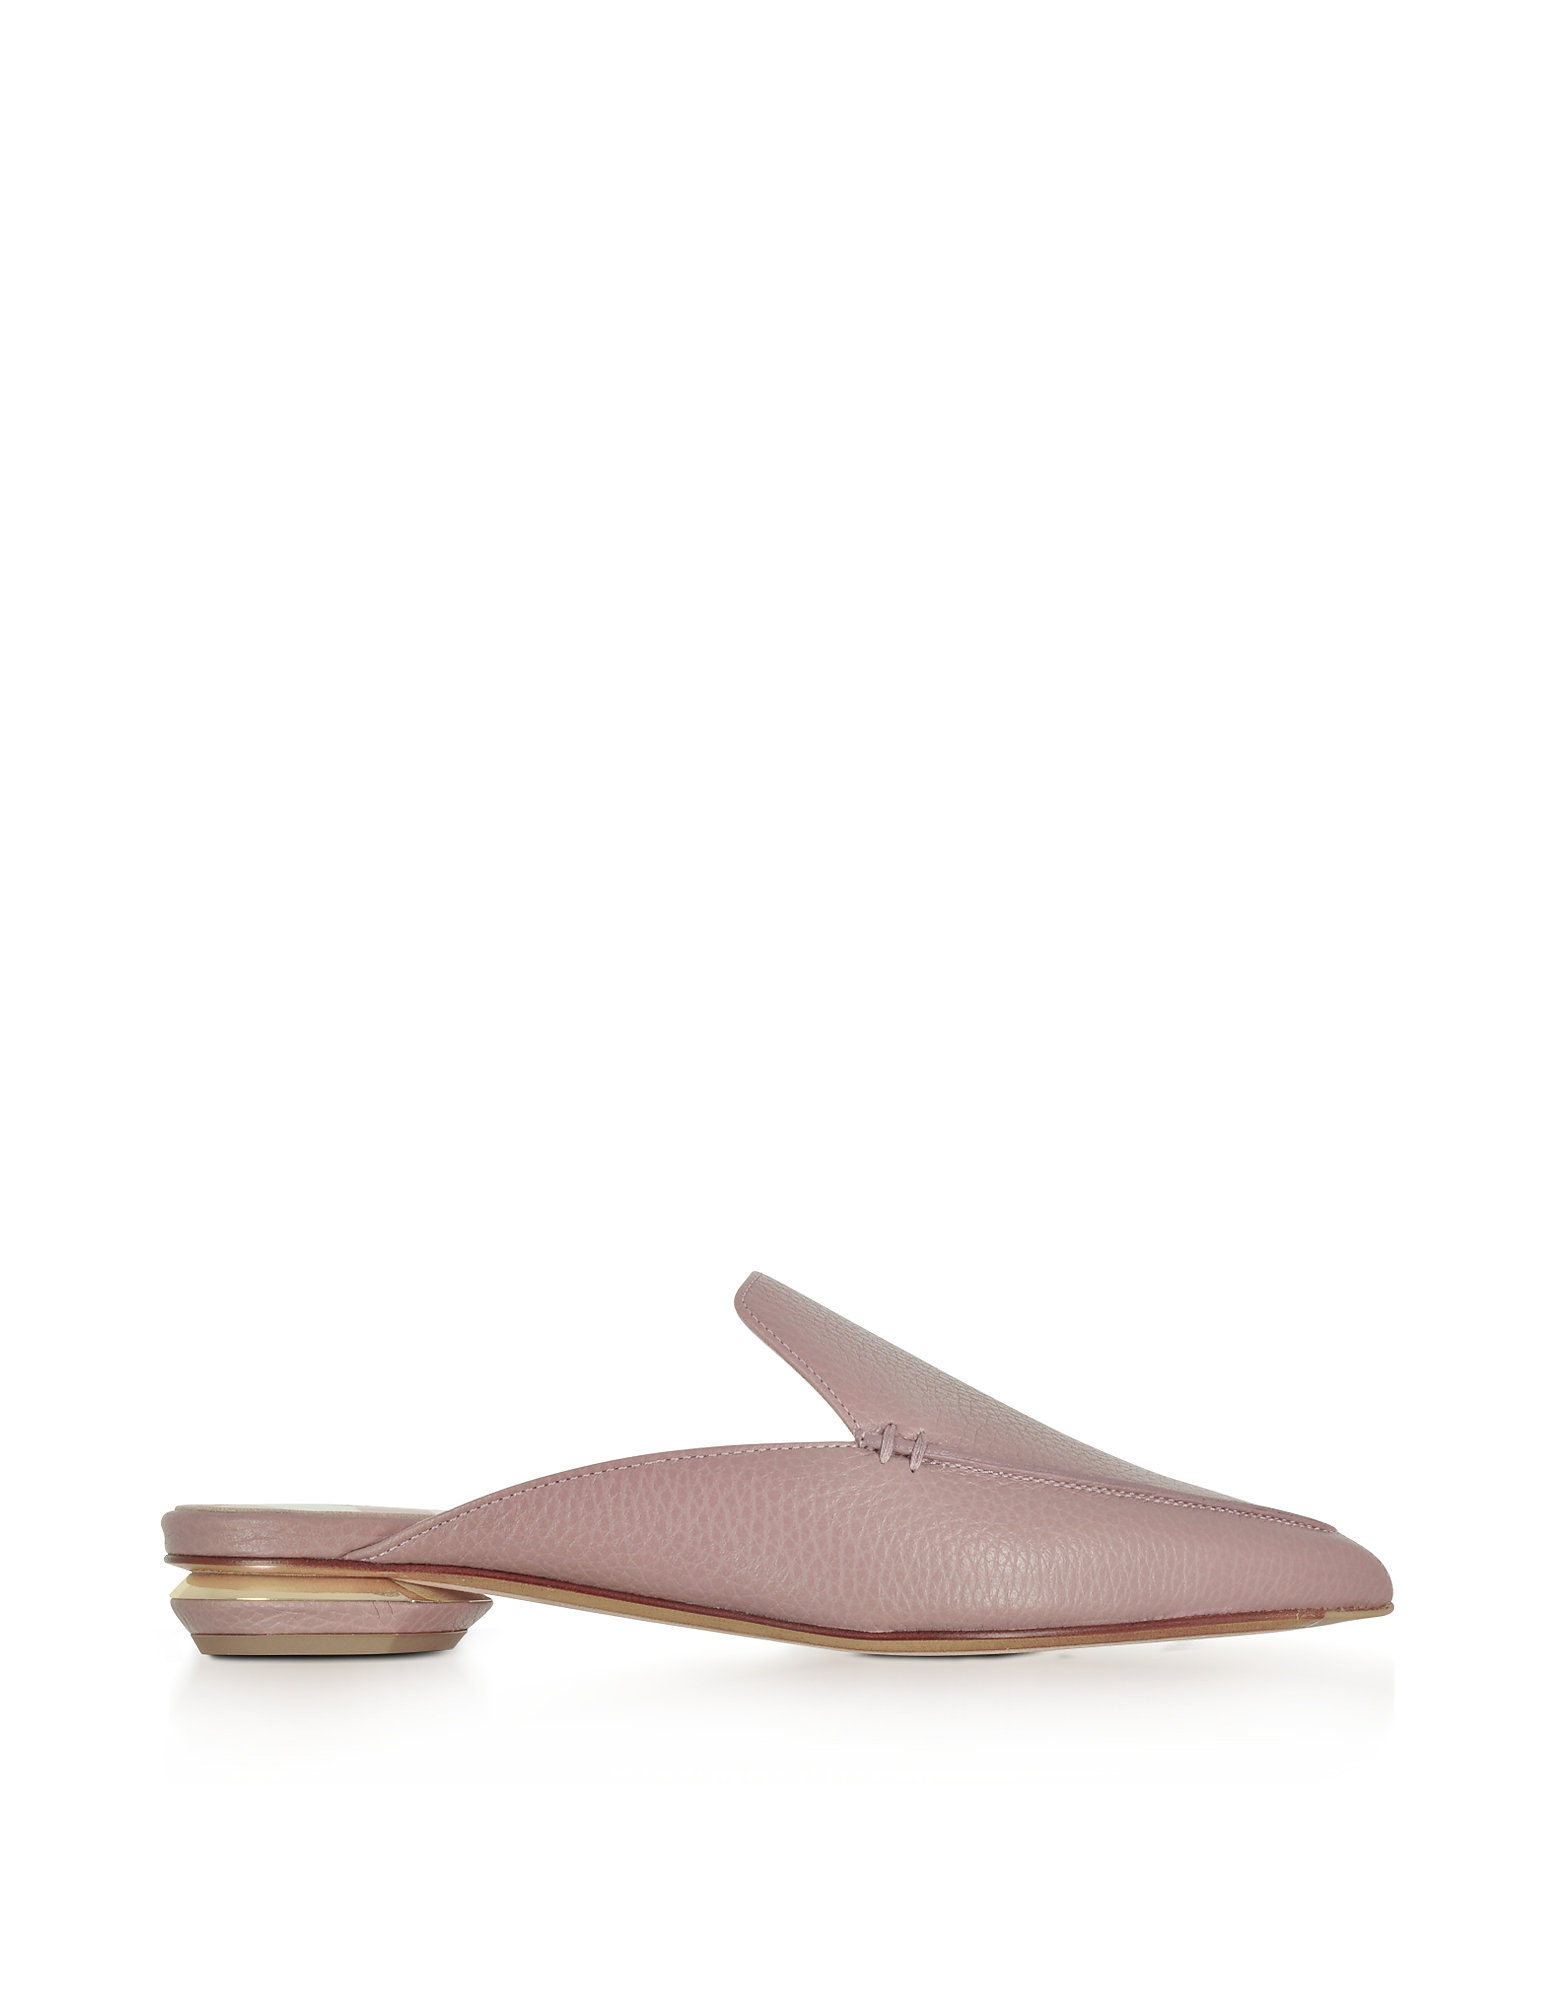 Nicholas Kirkwood Shoes, Beya Lilac Pink Tumbled Leather Mule